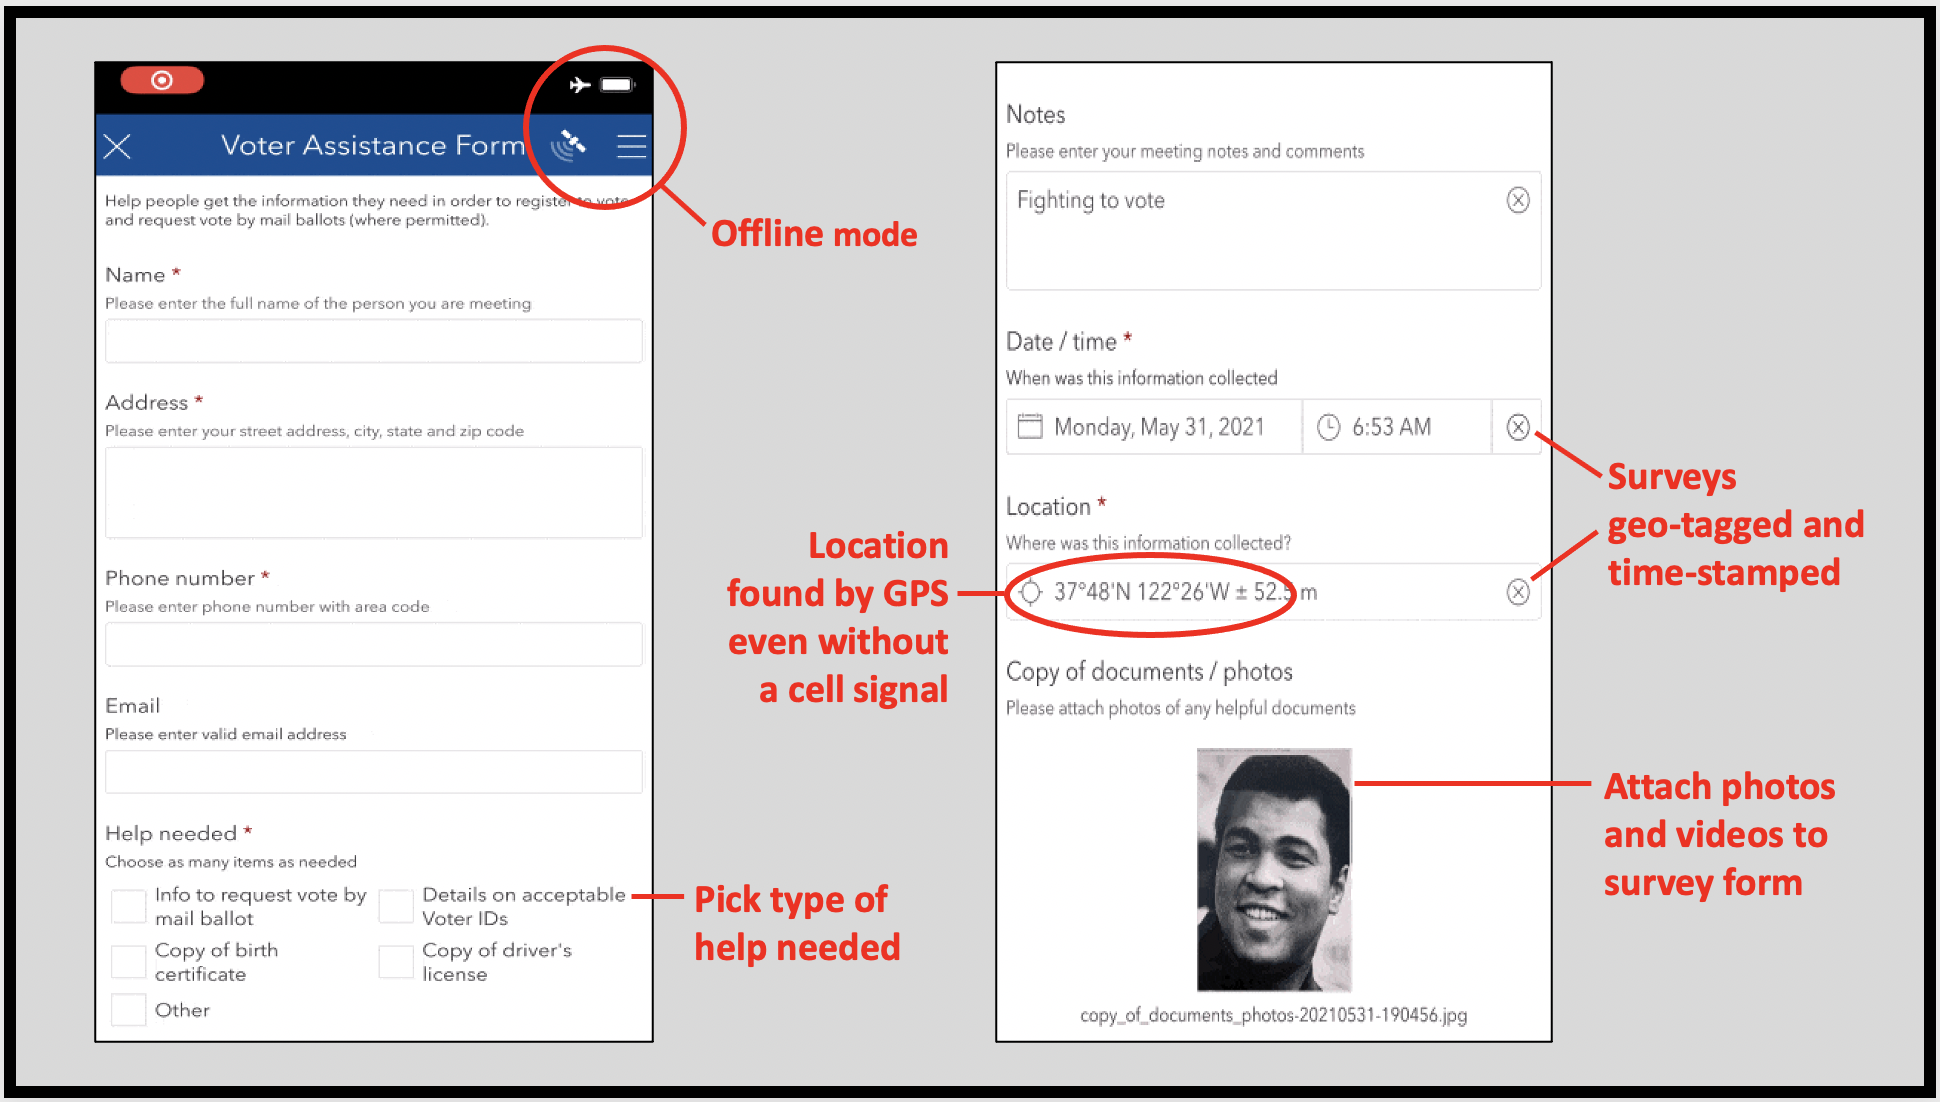 Survey123 Connect can be used without connectivity and tags submissions with location and time of the survey